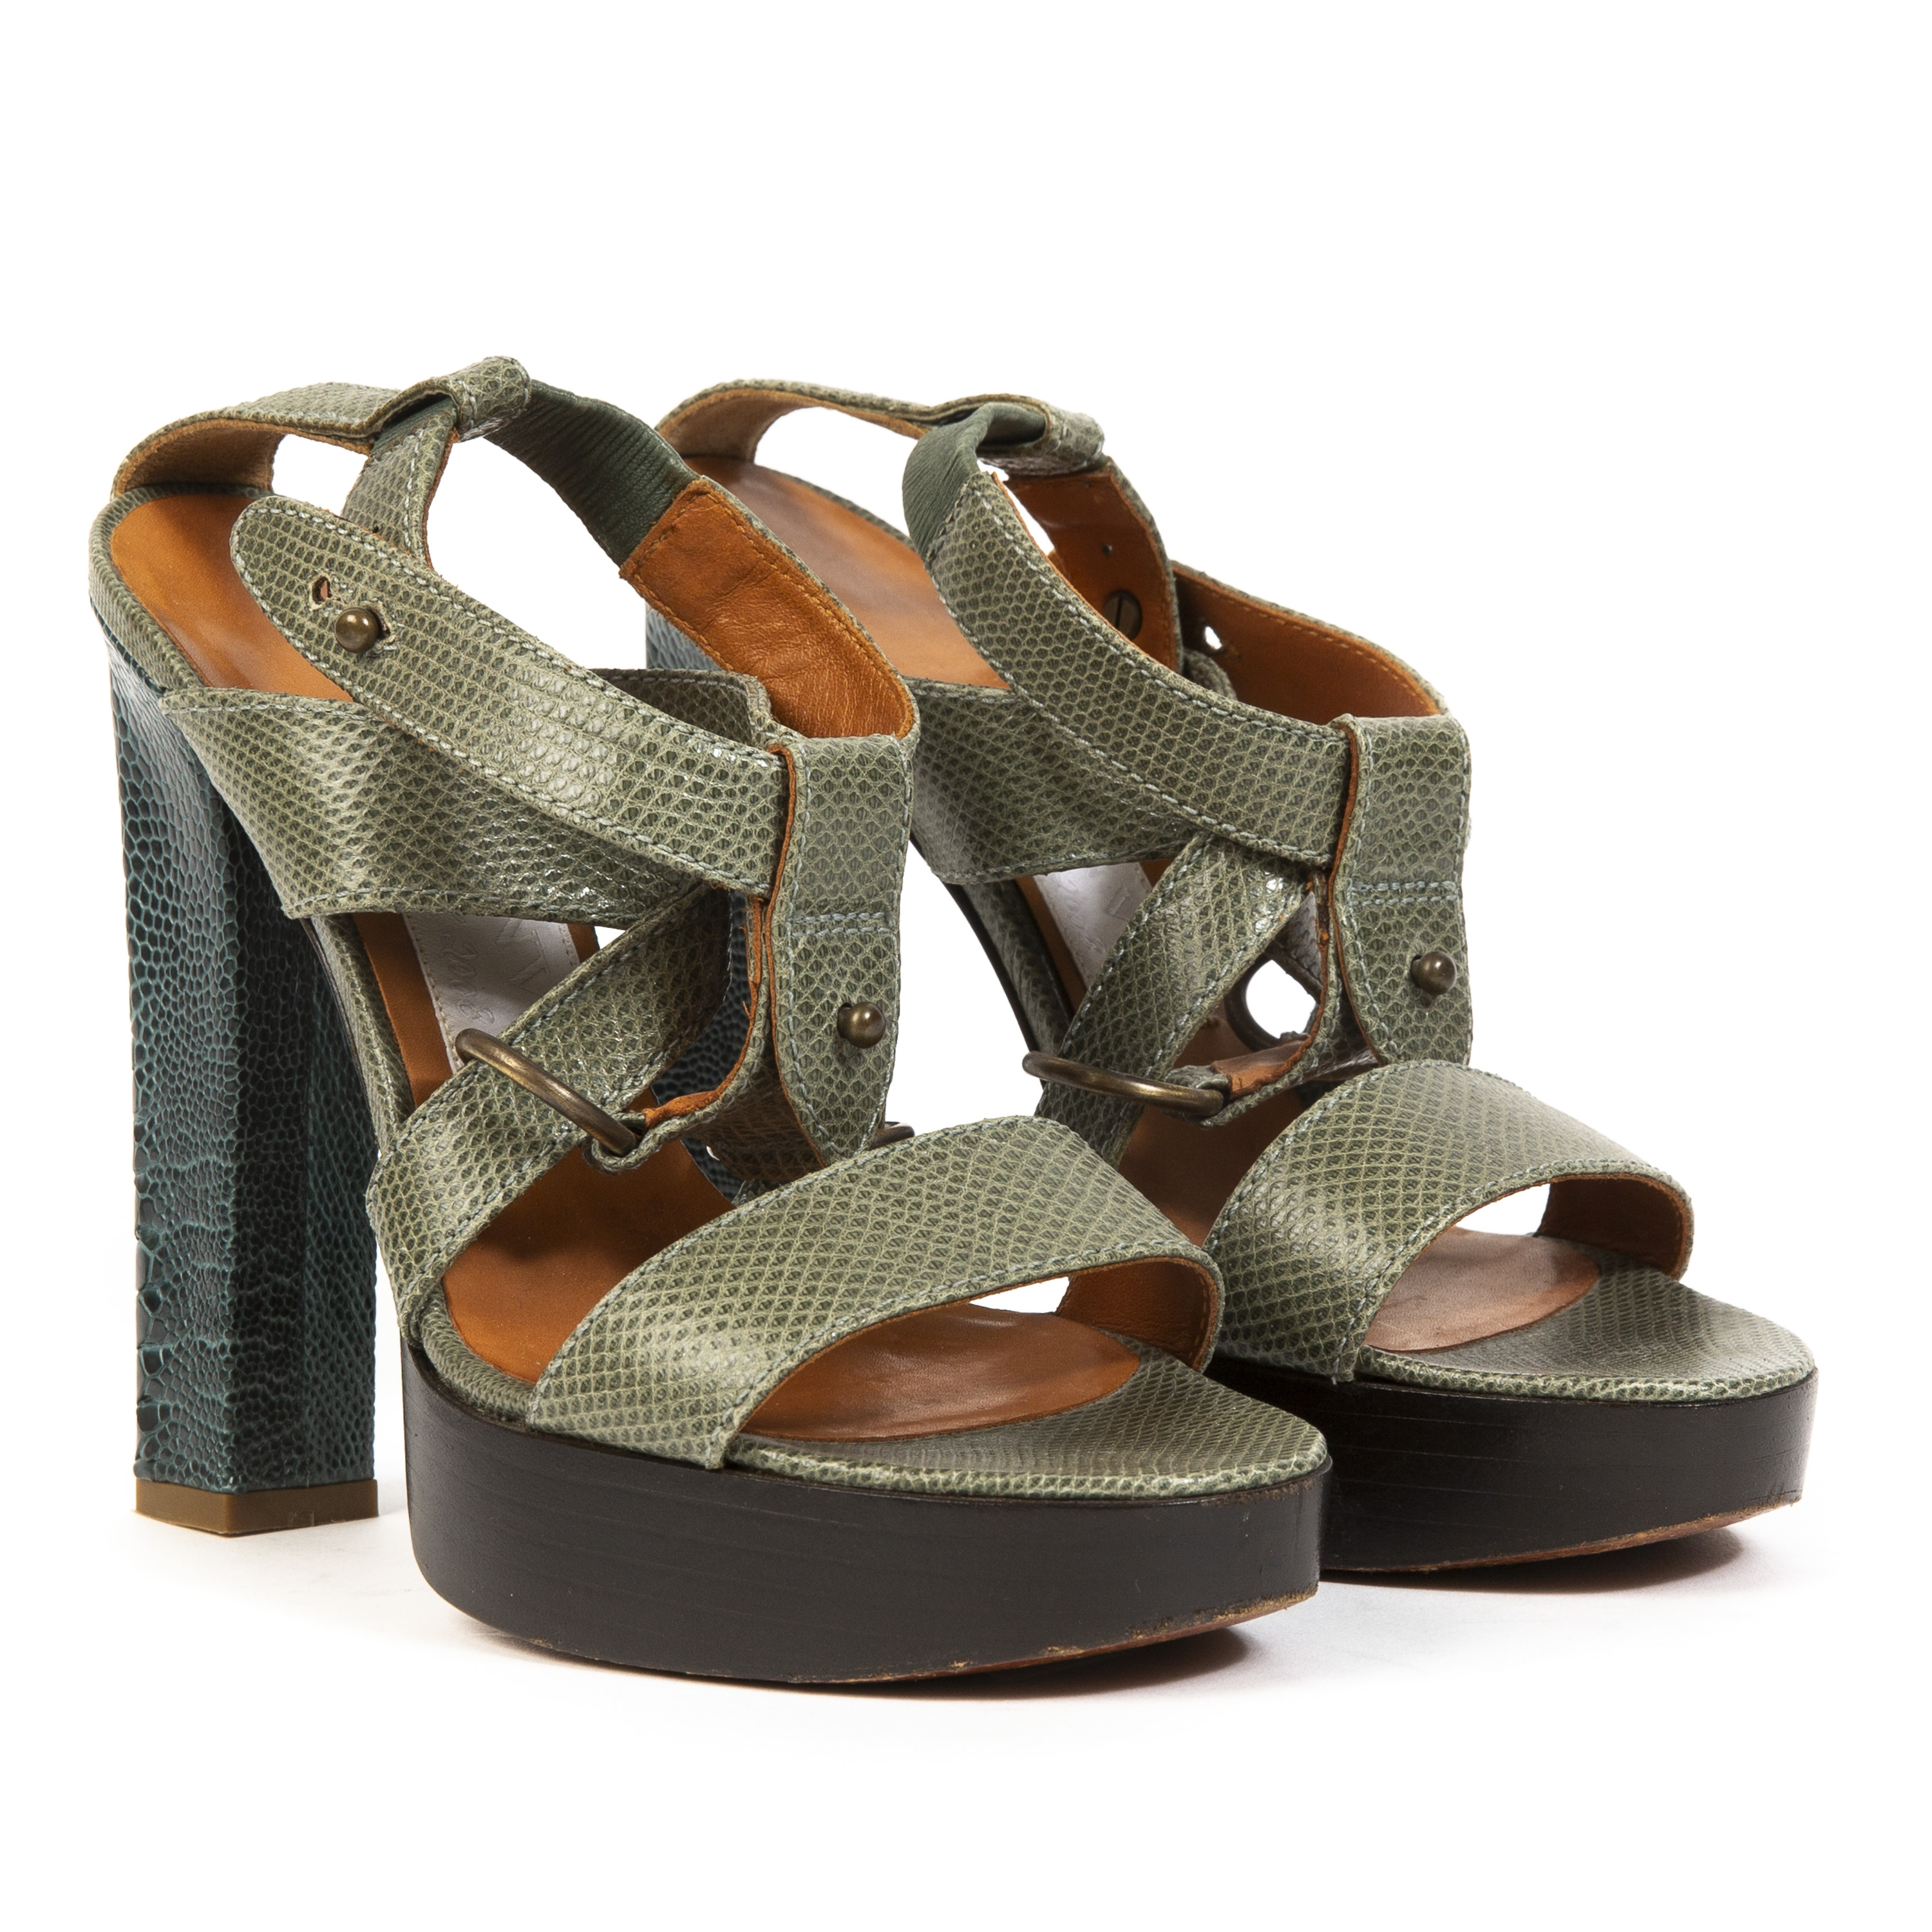 Buy authentic designer Lanvin secondhand shoes at Labellov at the best price.